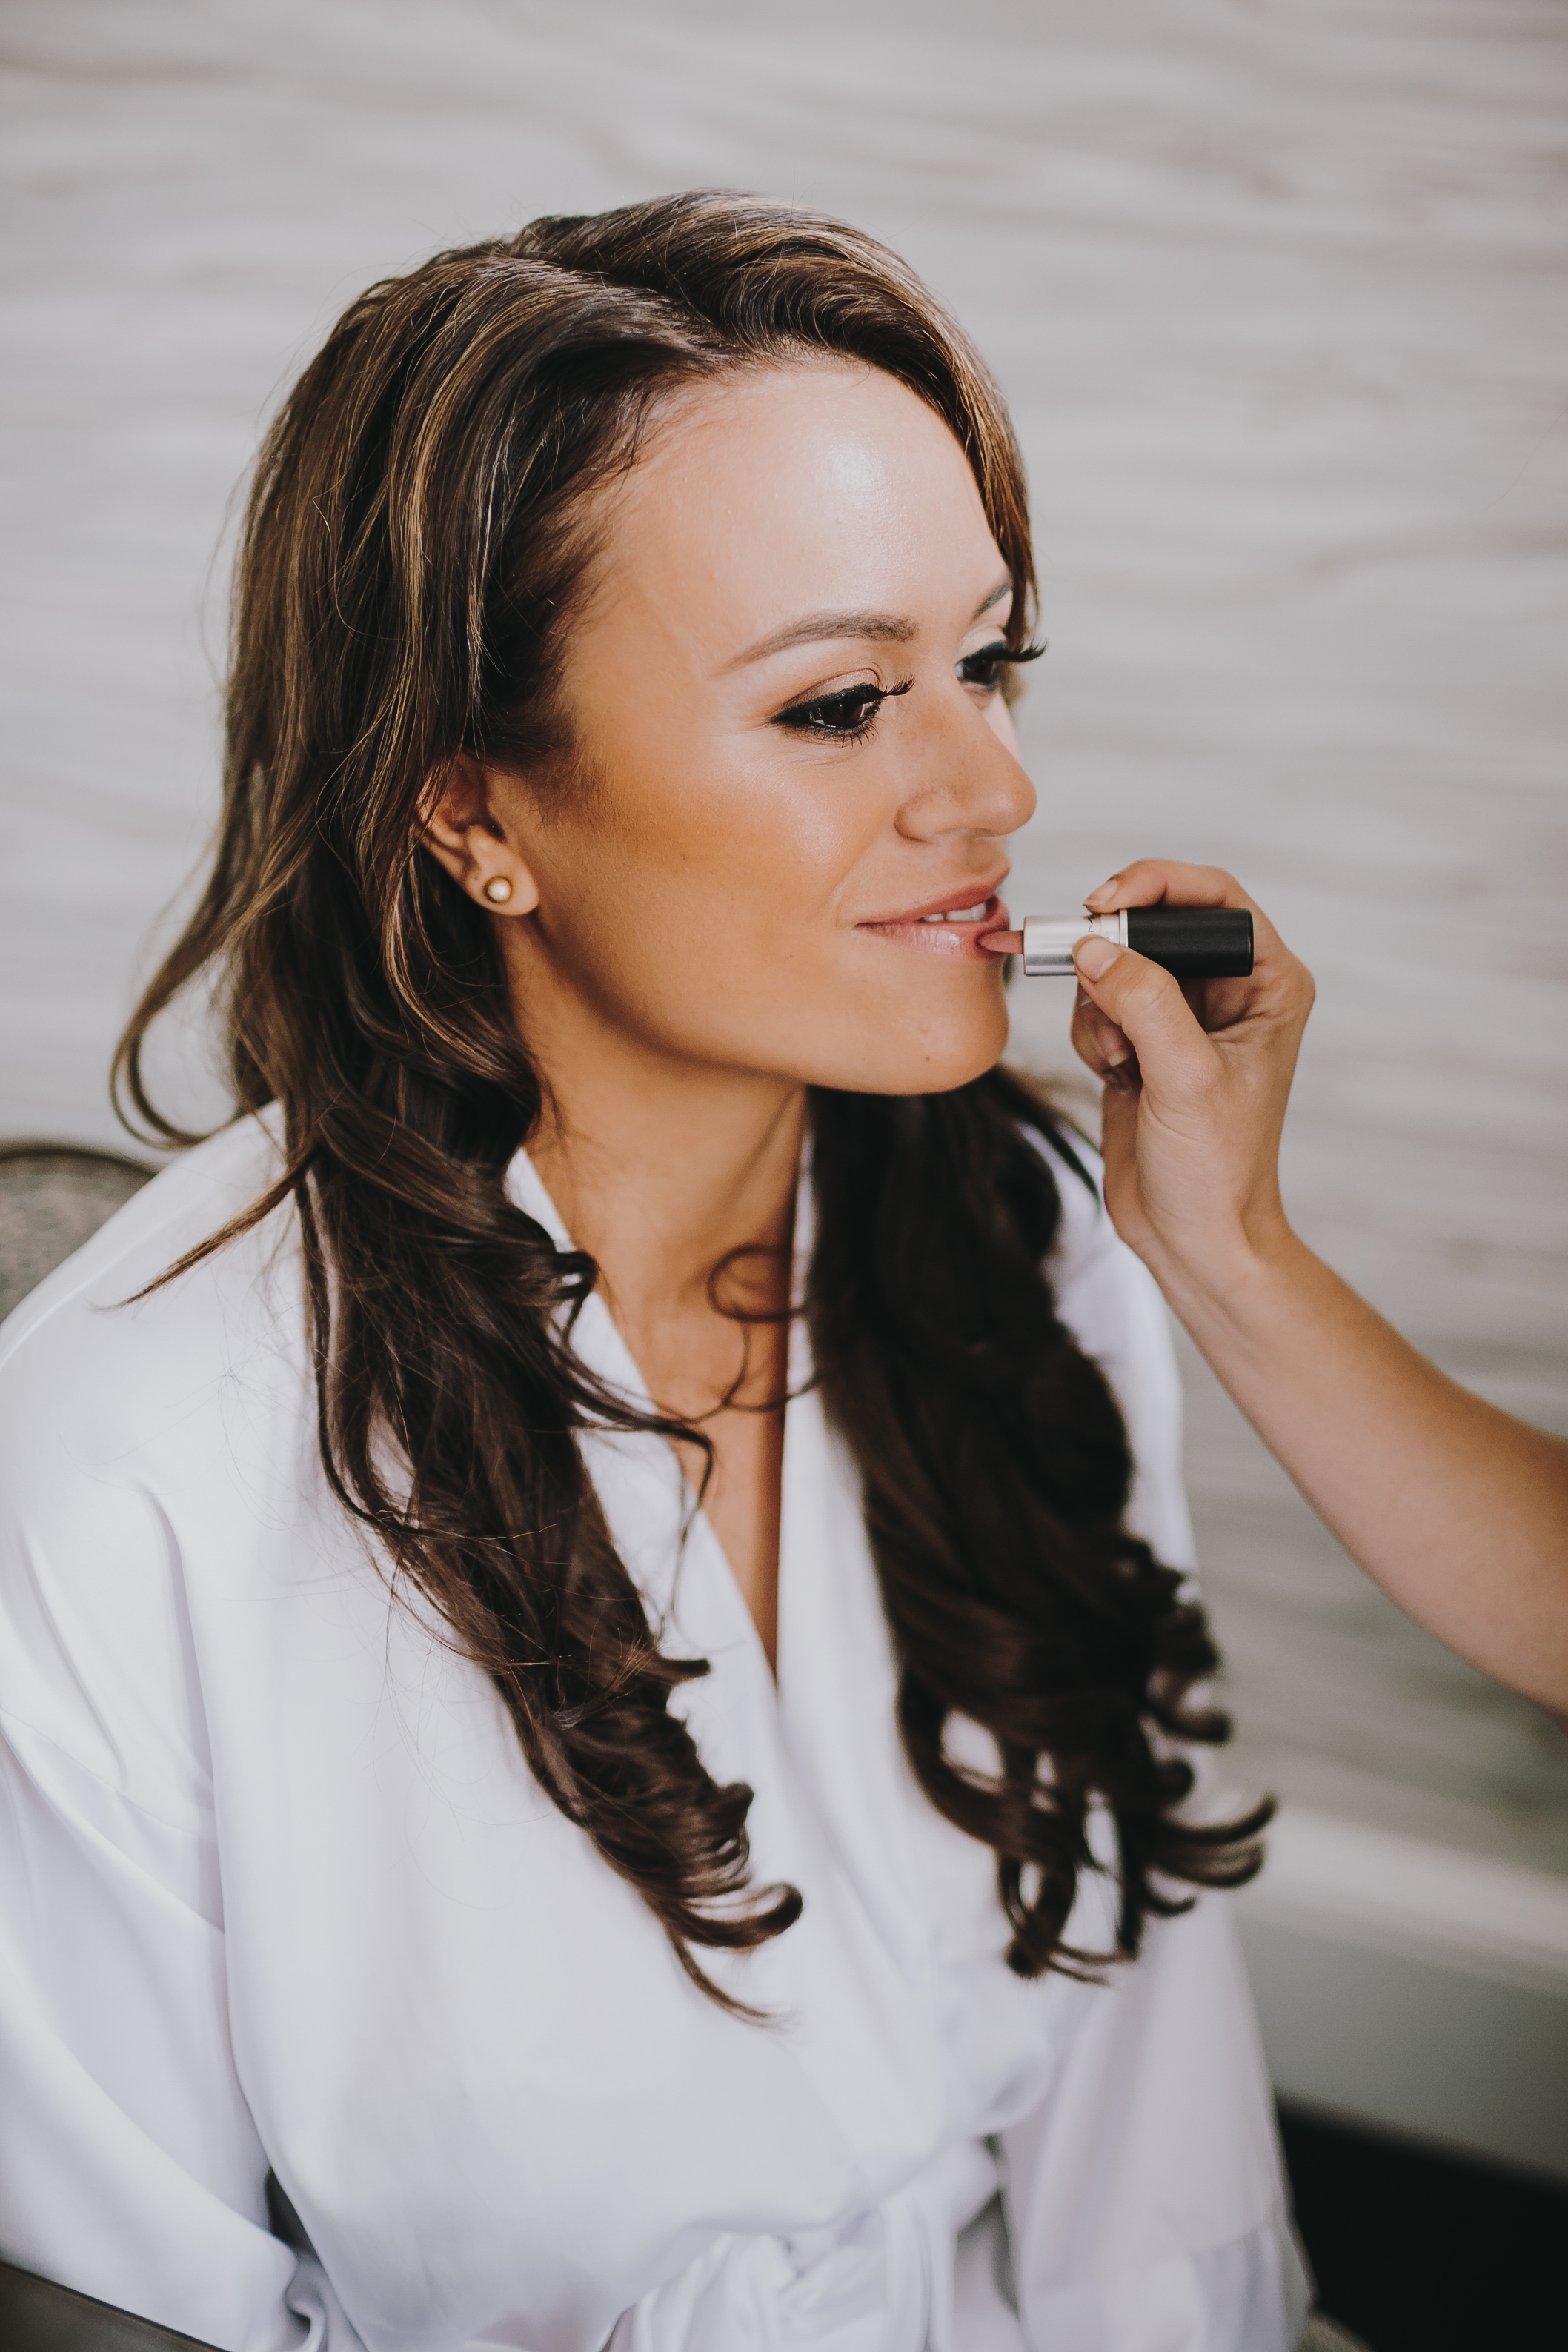 San-Diego-Military-Wedding-makeup-artist-thevanitybelle.com